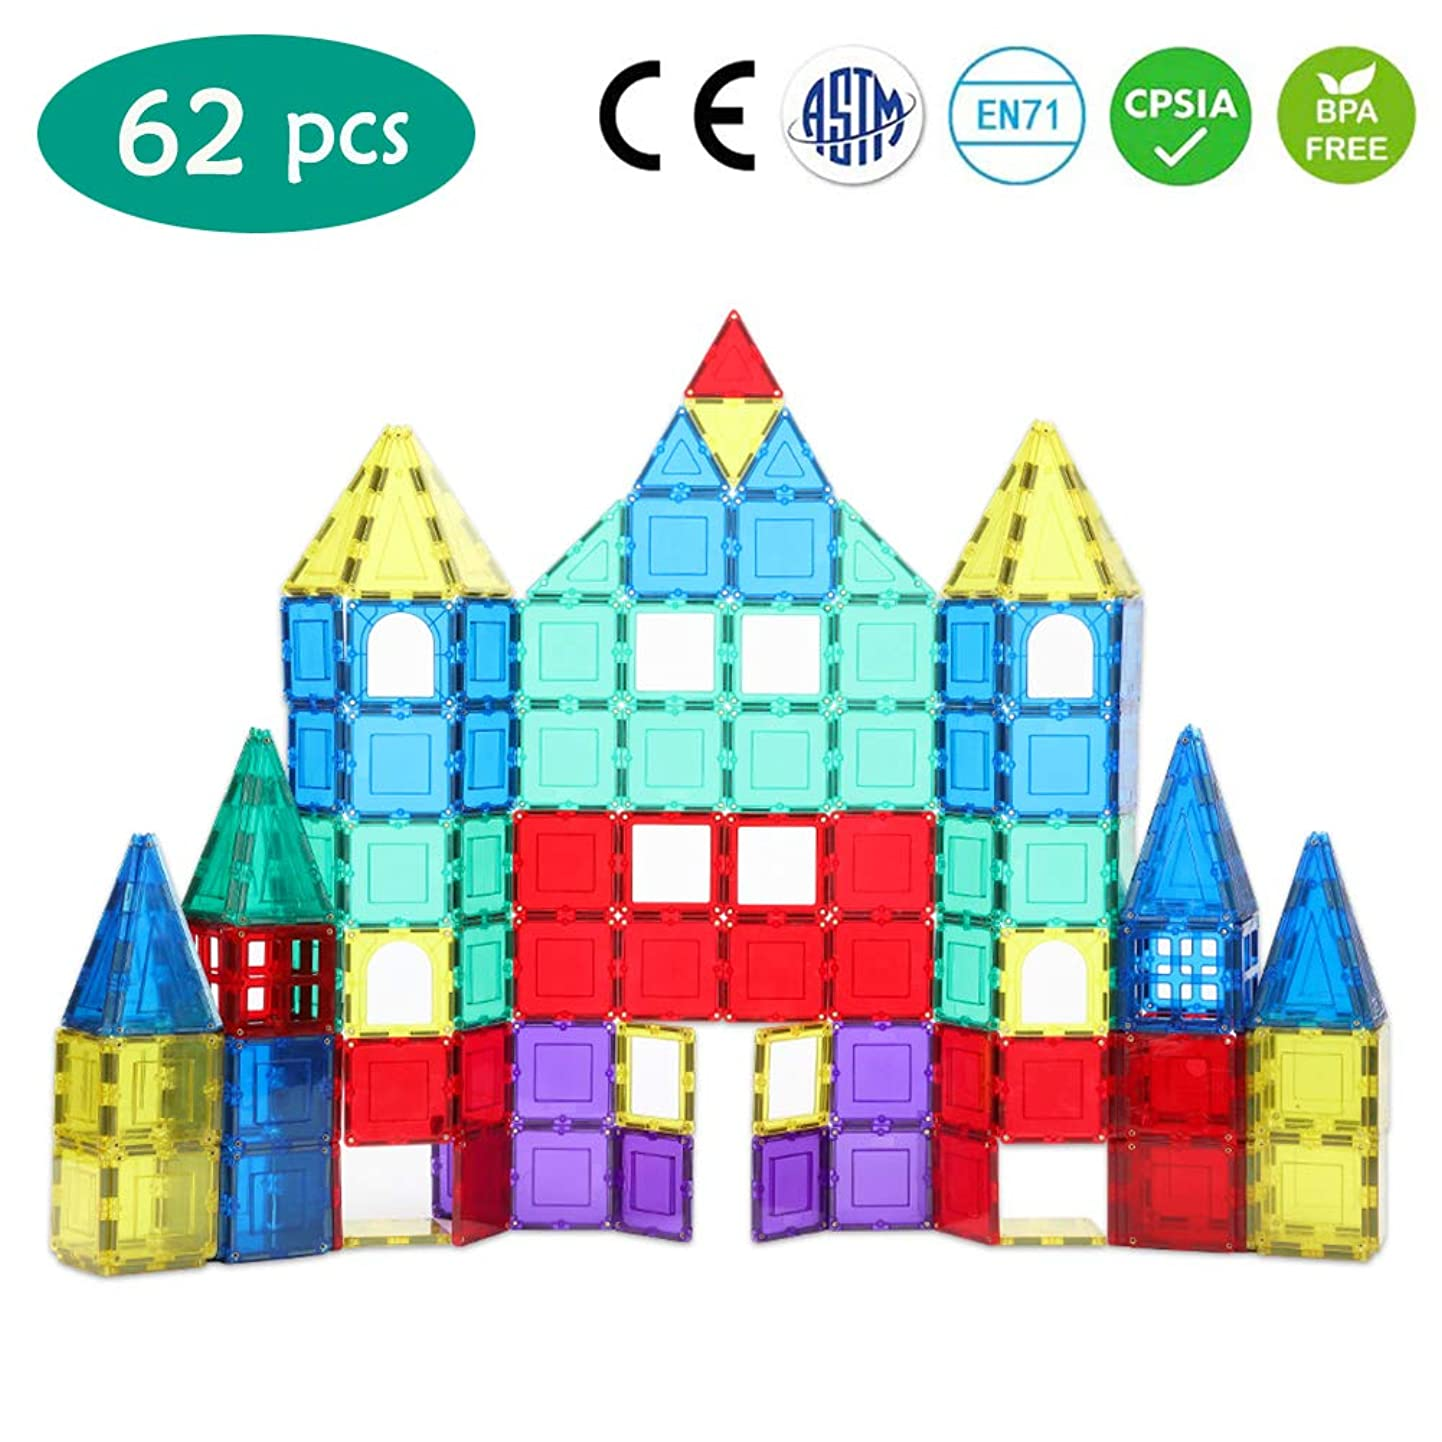 BO WEI Magnet Toys 62 pcs 3D Magnetic Building Blocks Set, STEM Magnetic Tiles Educational Toys for Toddlers | Creativity, Imagination, Inspiration mjzazcawejr9